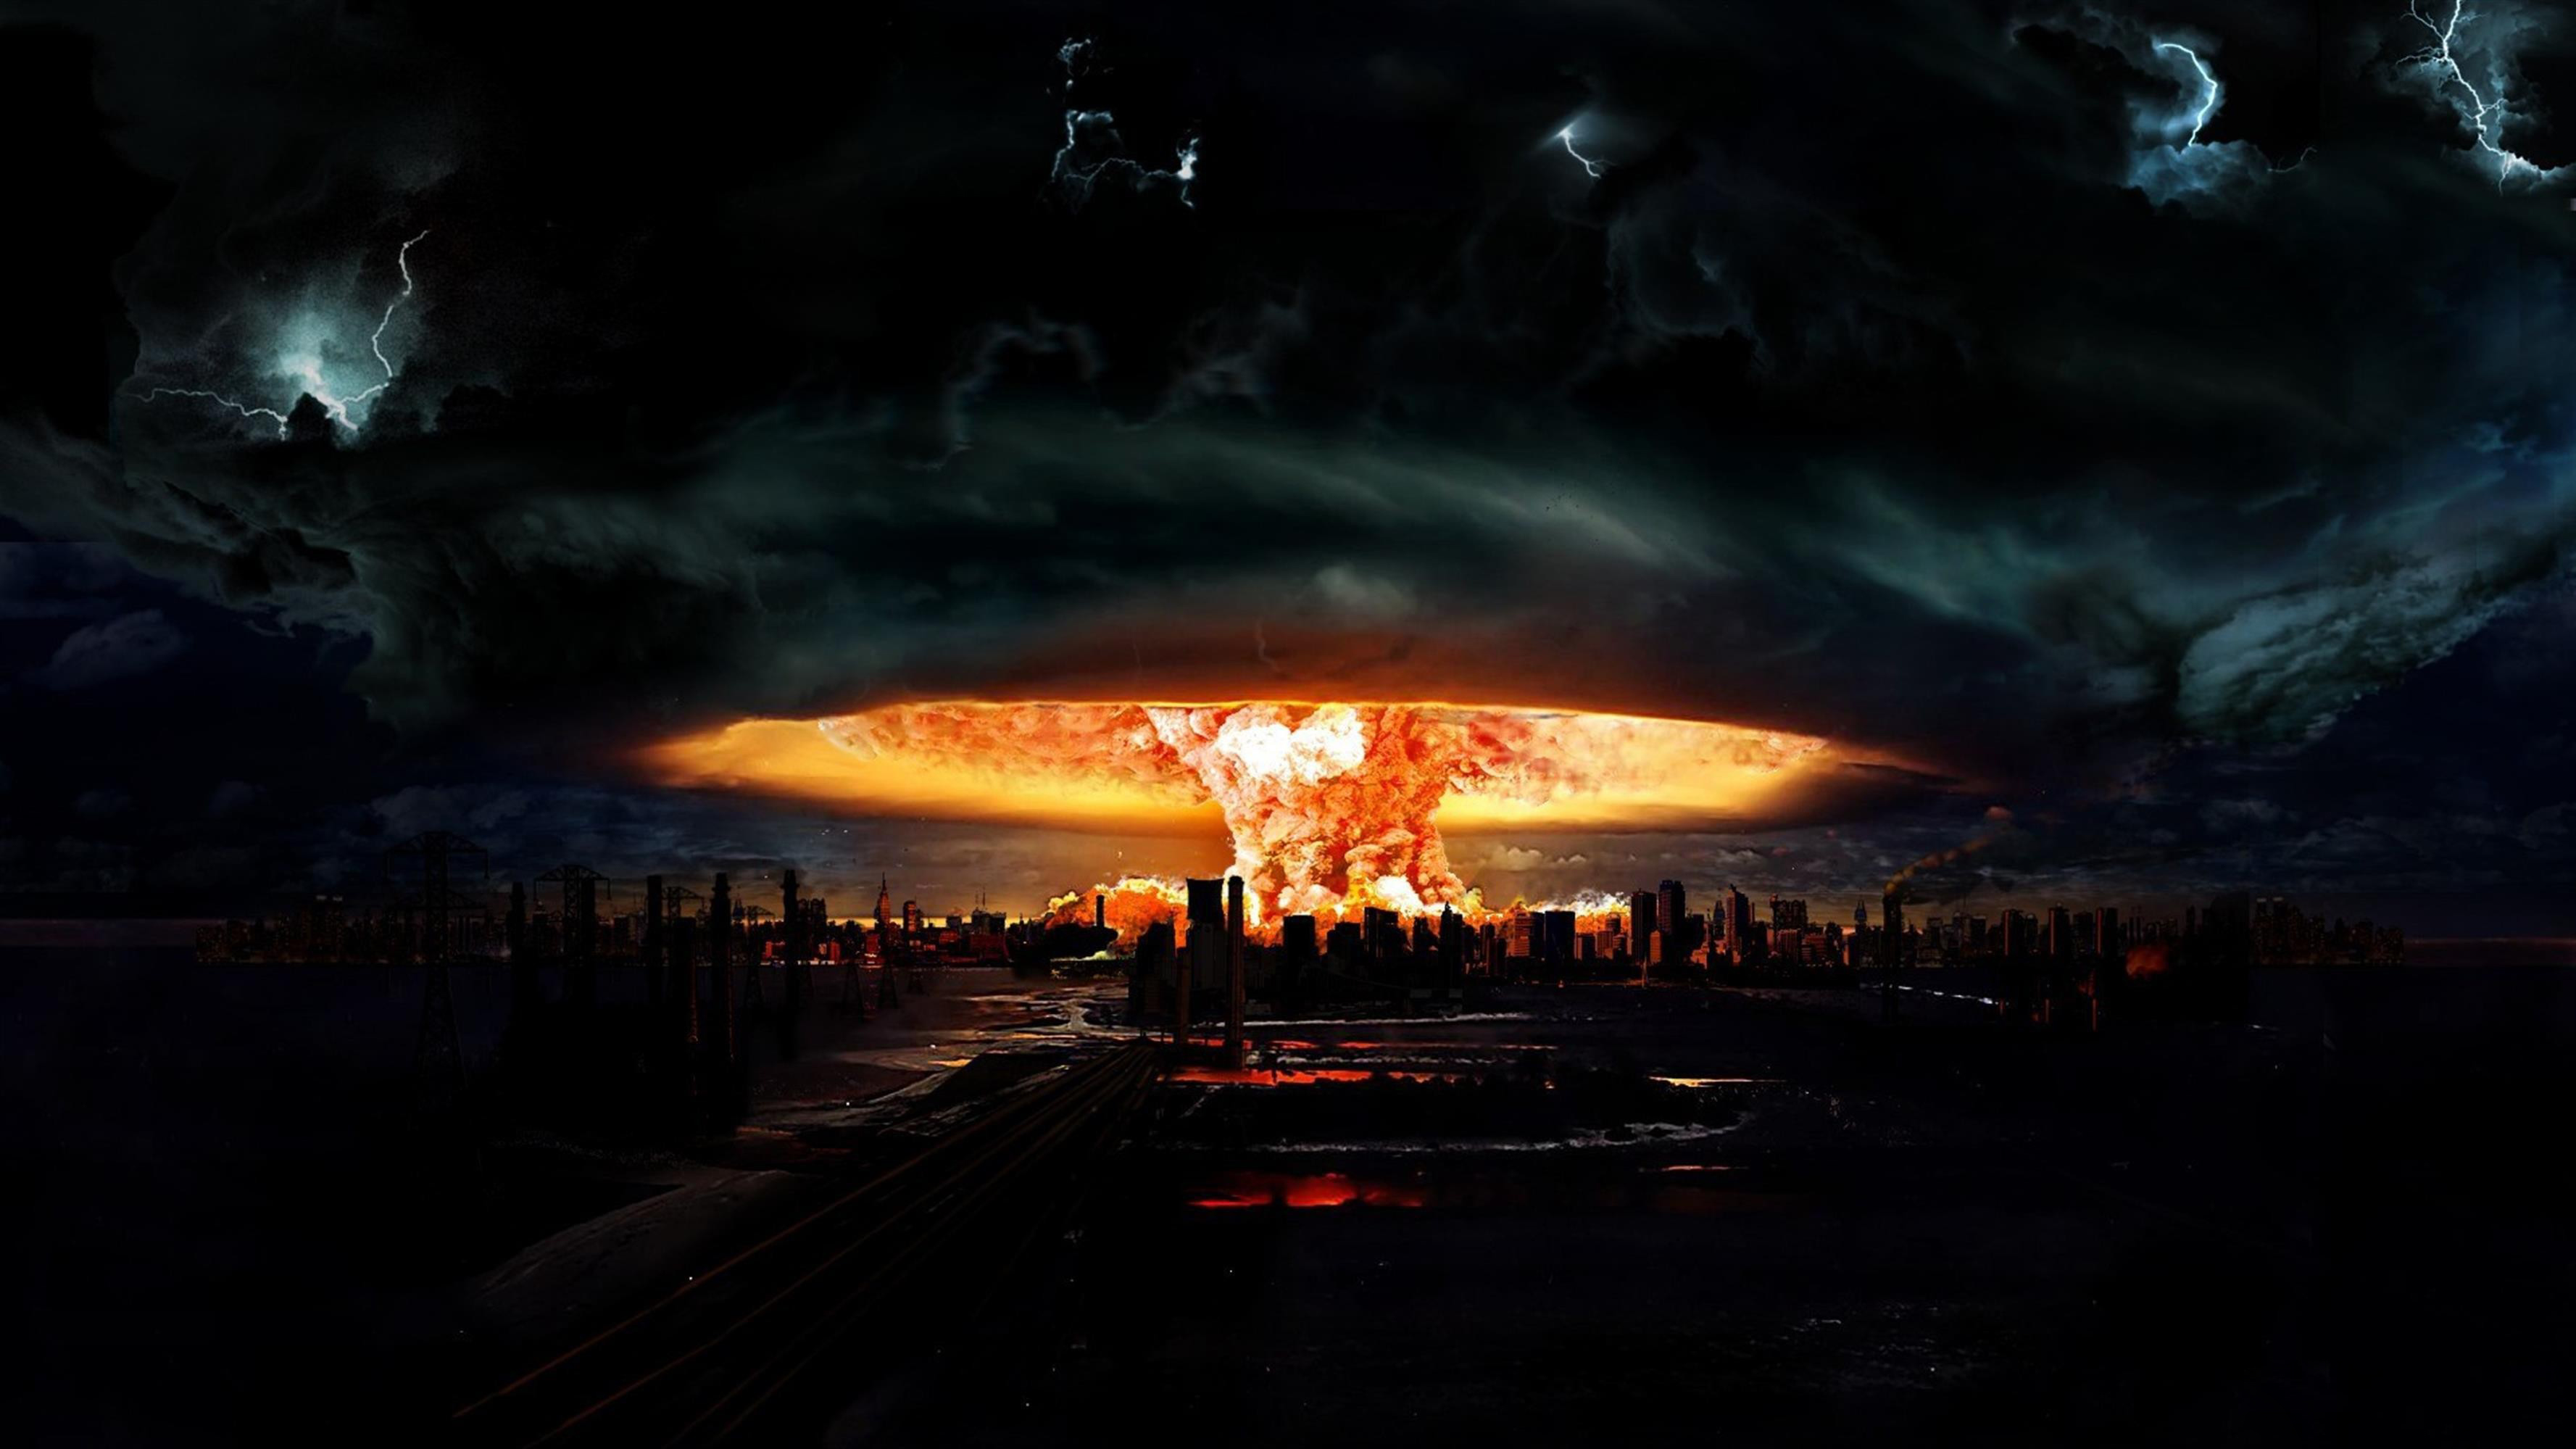 Nuclear Explosion Wallpaper Hd 3554x1999